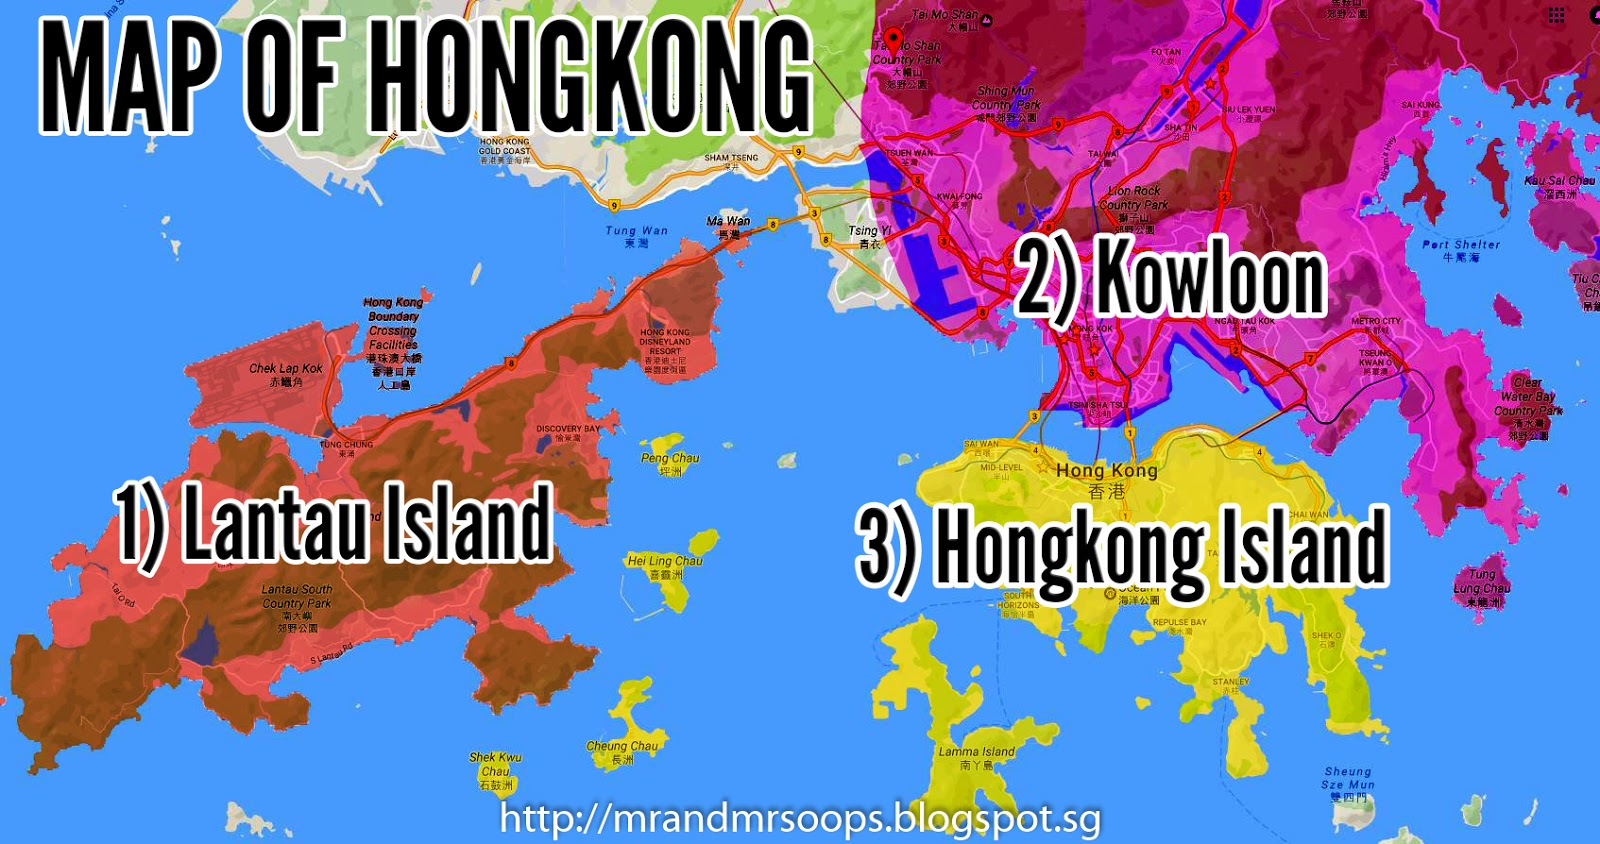 Our personal itinerary for free and easy in hongkong first up we need to first understand the geographical map of hongkong hongkong is segmented into 3 main areas lantau island hongkong island and kowloon gumiabroncs Choice Image